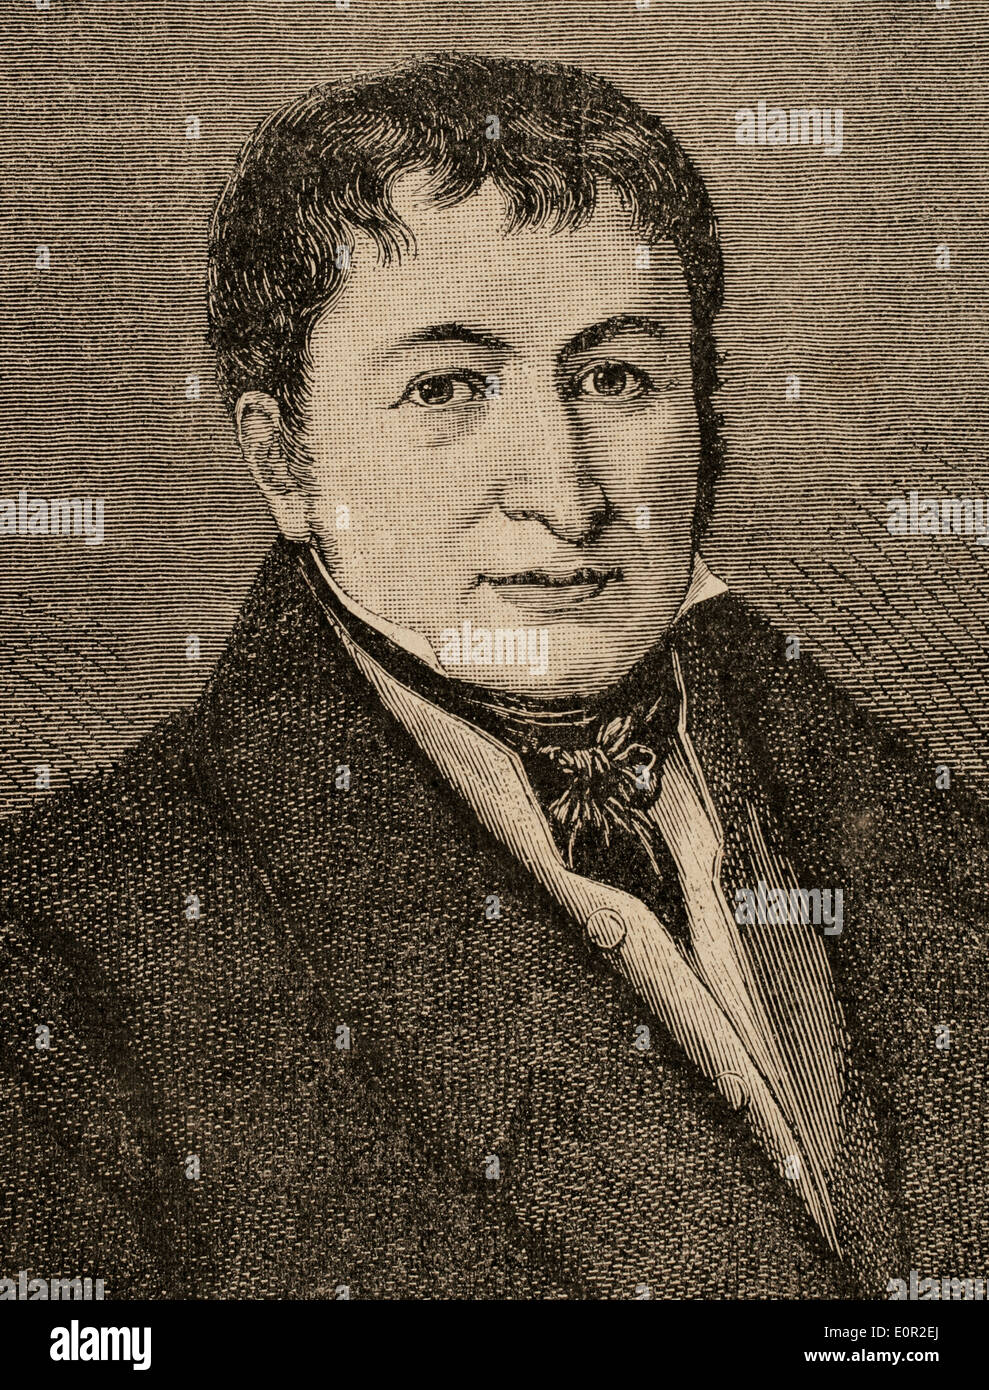 Friedrich Koenig (1774-1833). German Inventor. The Engraving in Illustration, 1883. - Stock Image